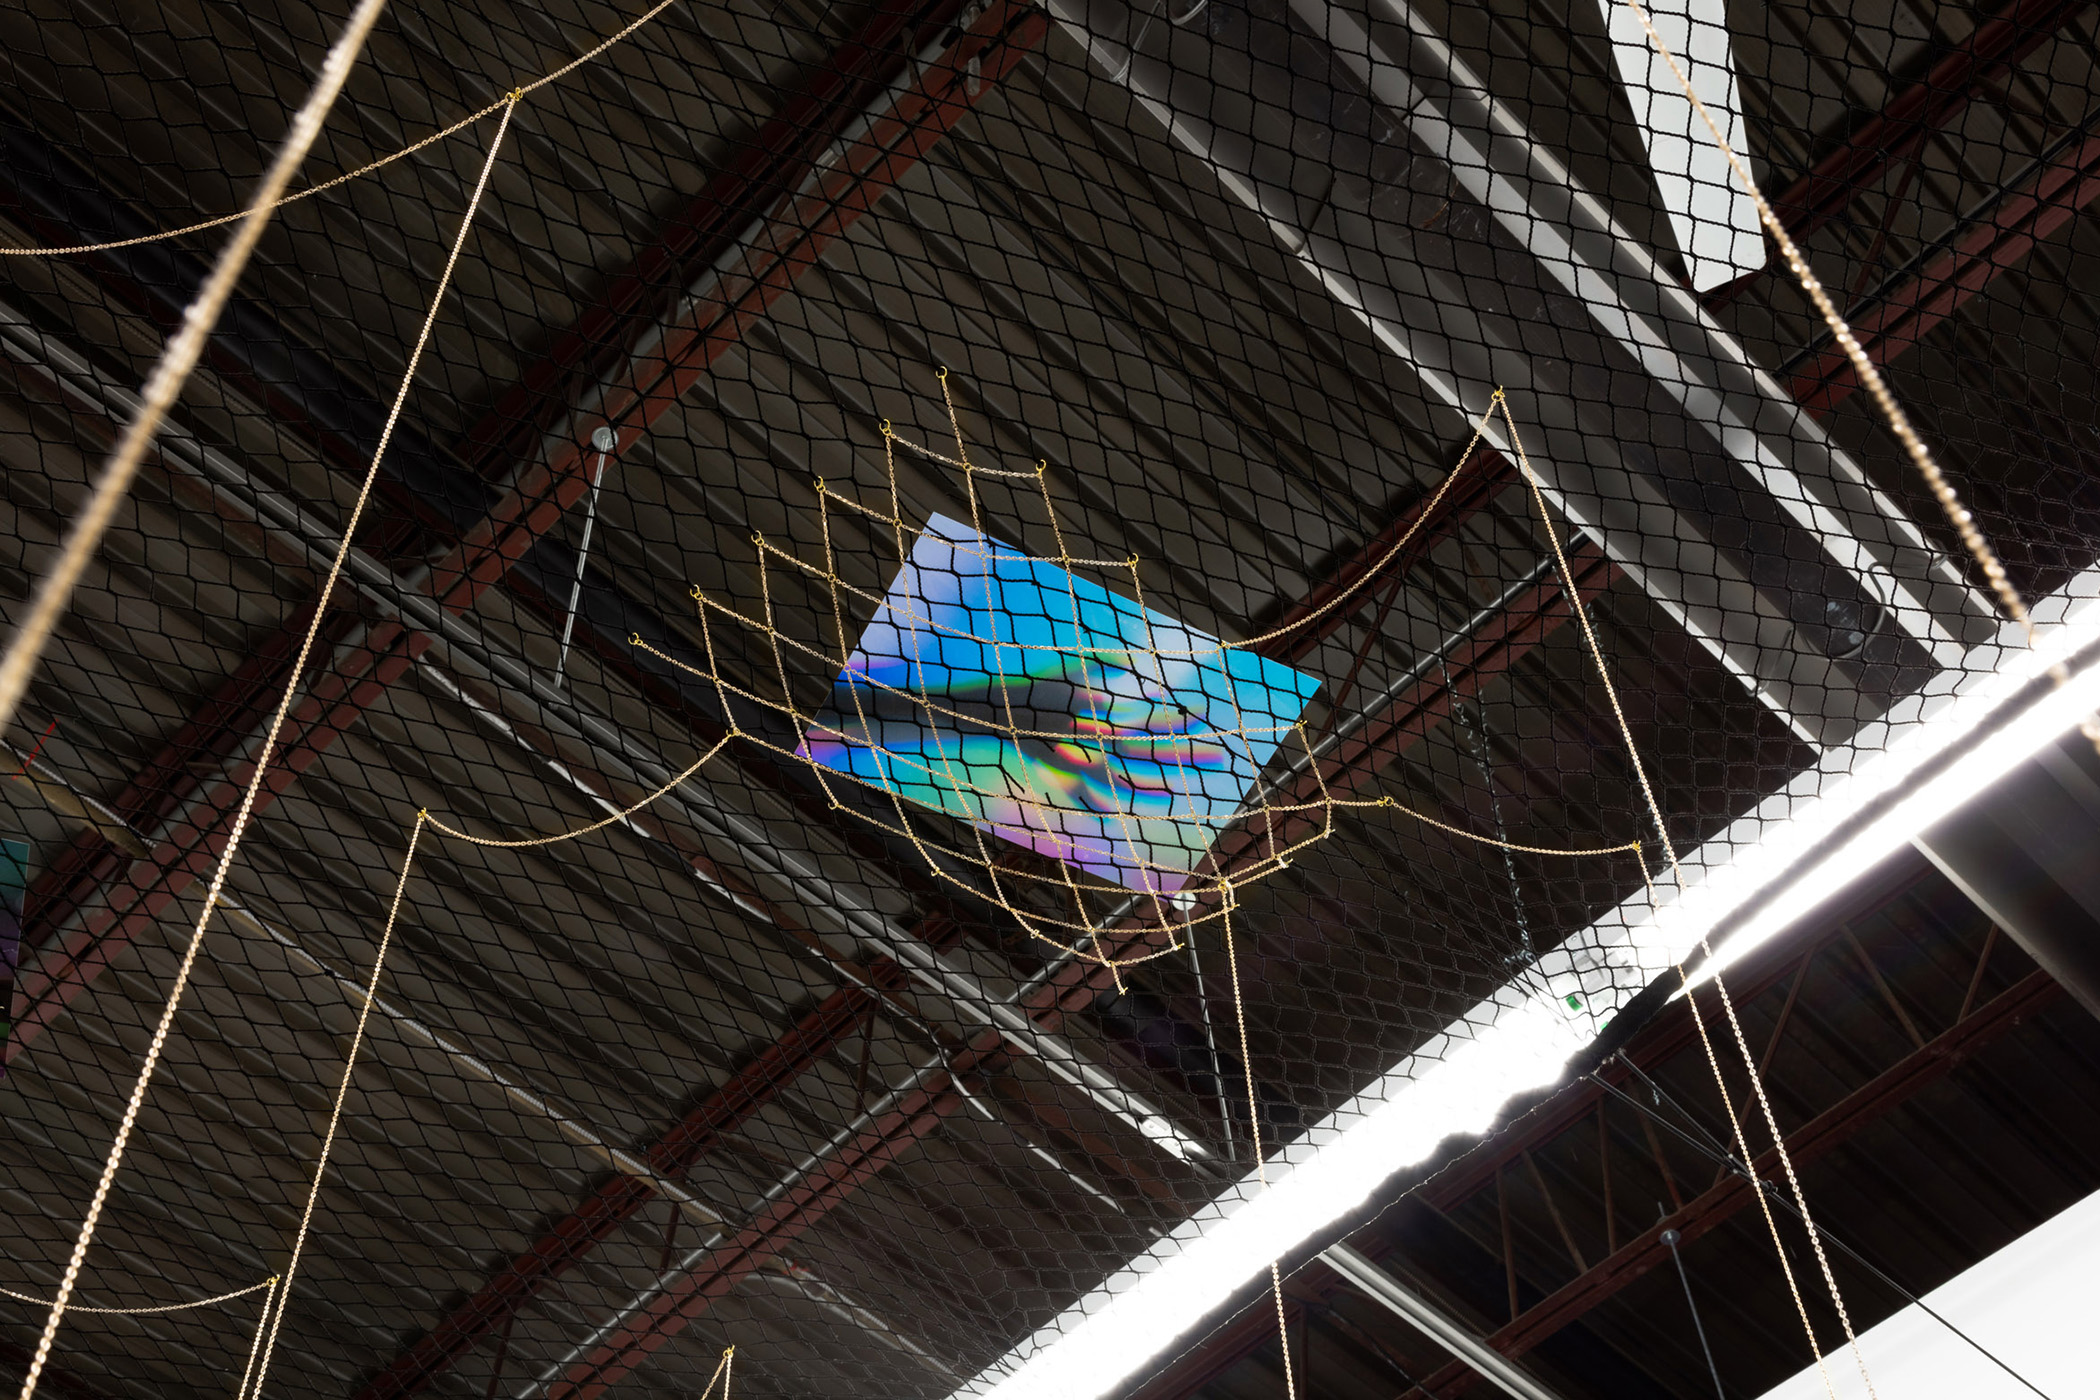 <i>Love is Gravity</i><br>2019-20<br> Colour transparencies, netting and gold chain <br>Dimensions variable